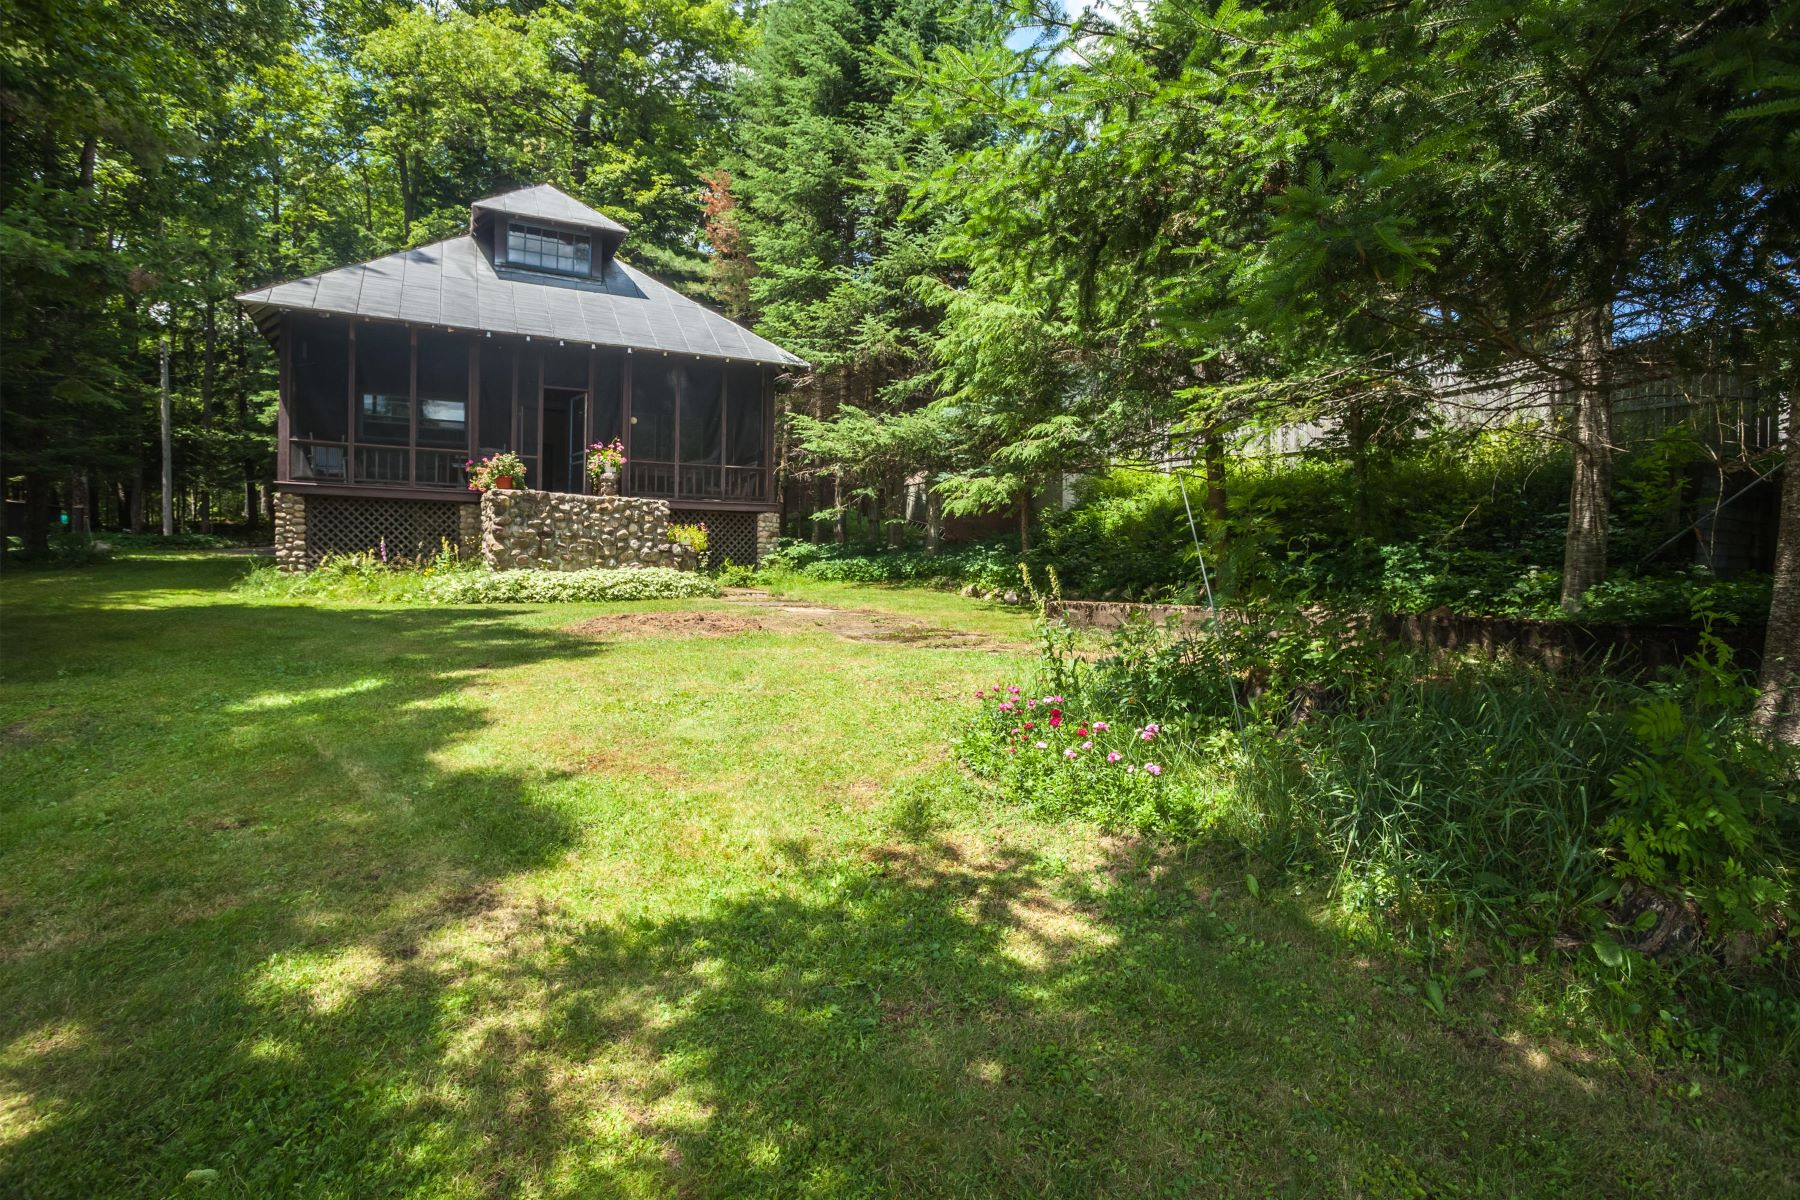 Maison unifamiliale pour l Vente à Big Moose Waterfront Cottage 138 Glenmore Road Big Moose, New York 13331 États-Unis